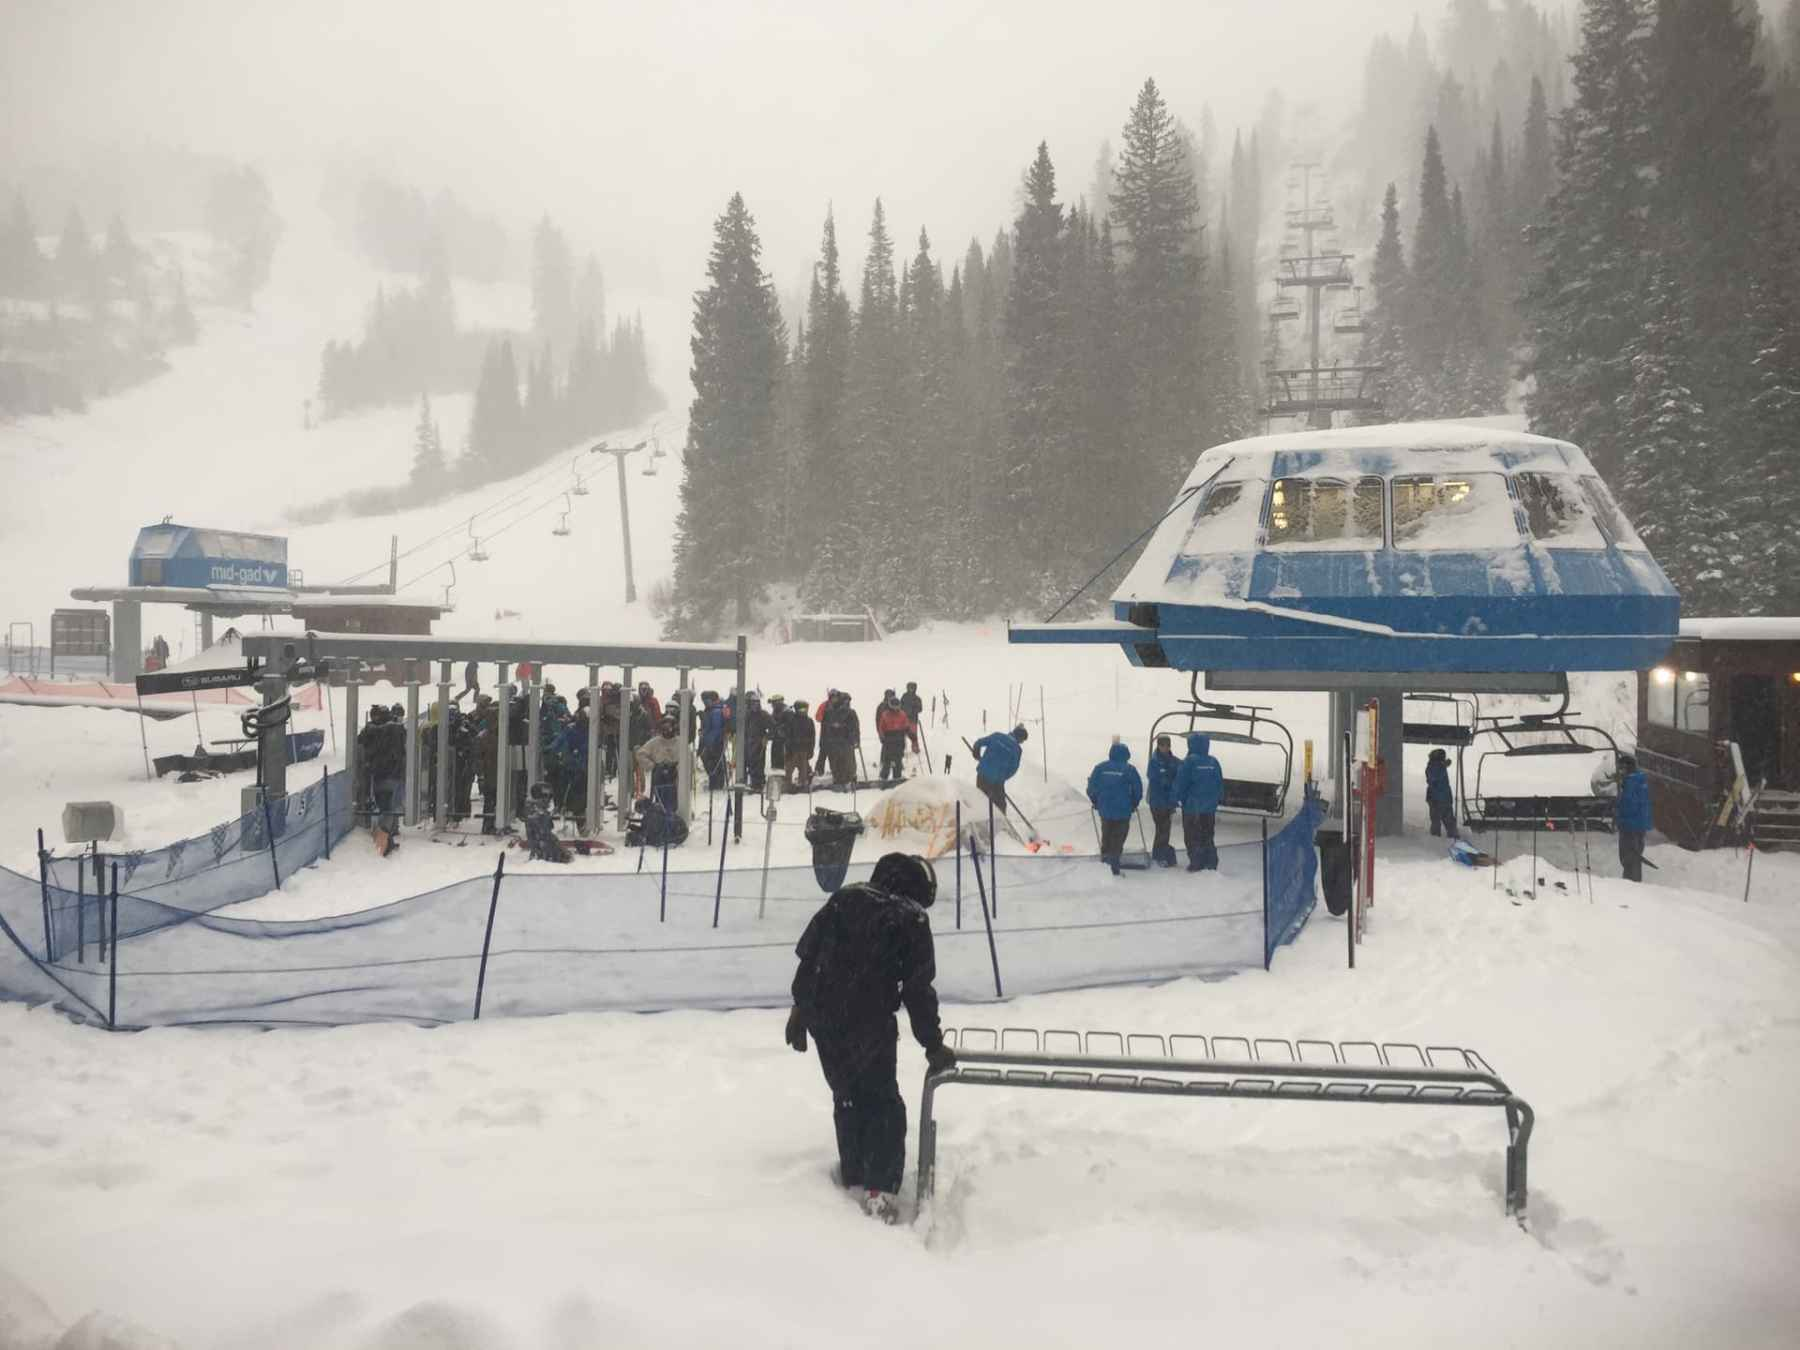 Opening Day at Snowbird 2018 - 2019 Season